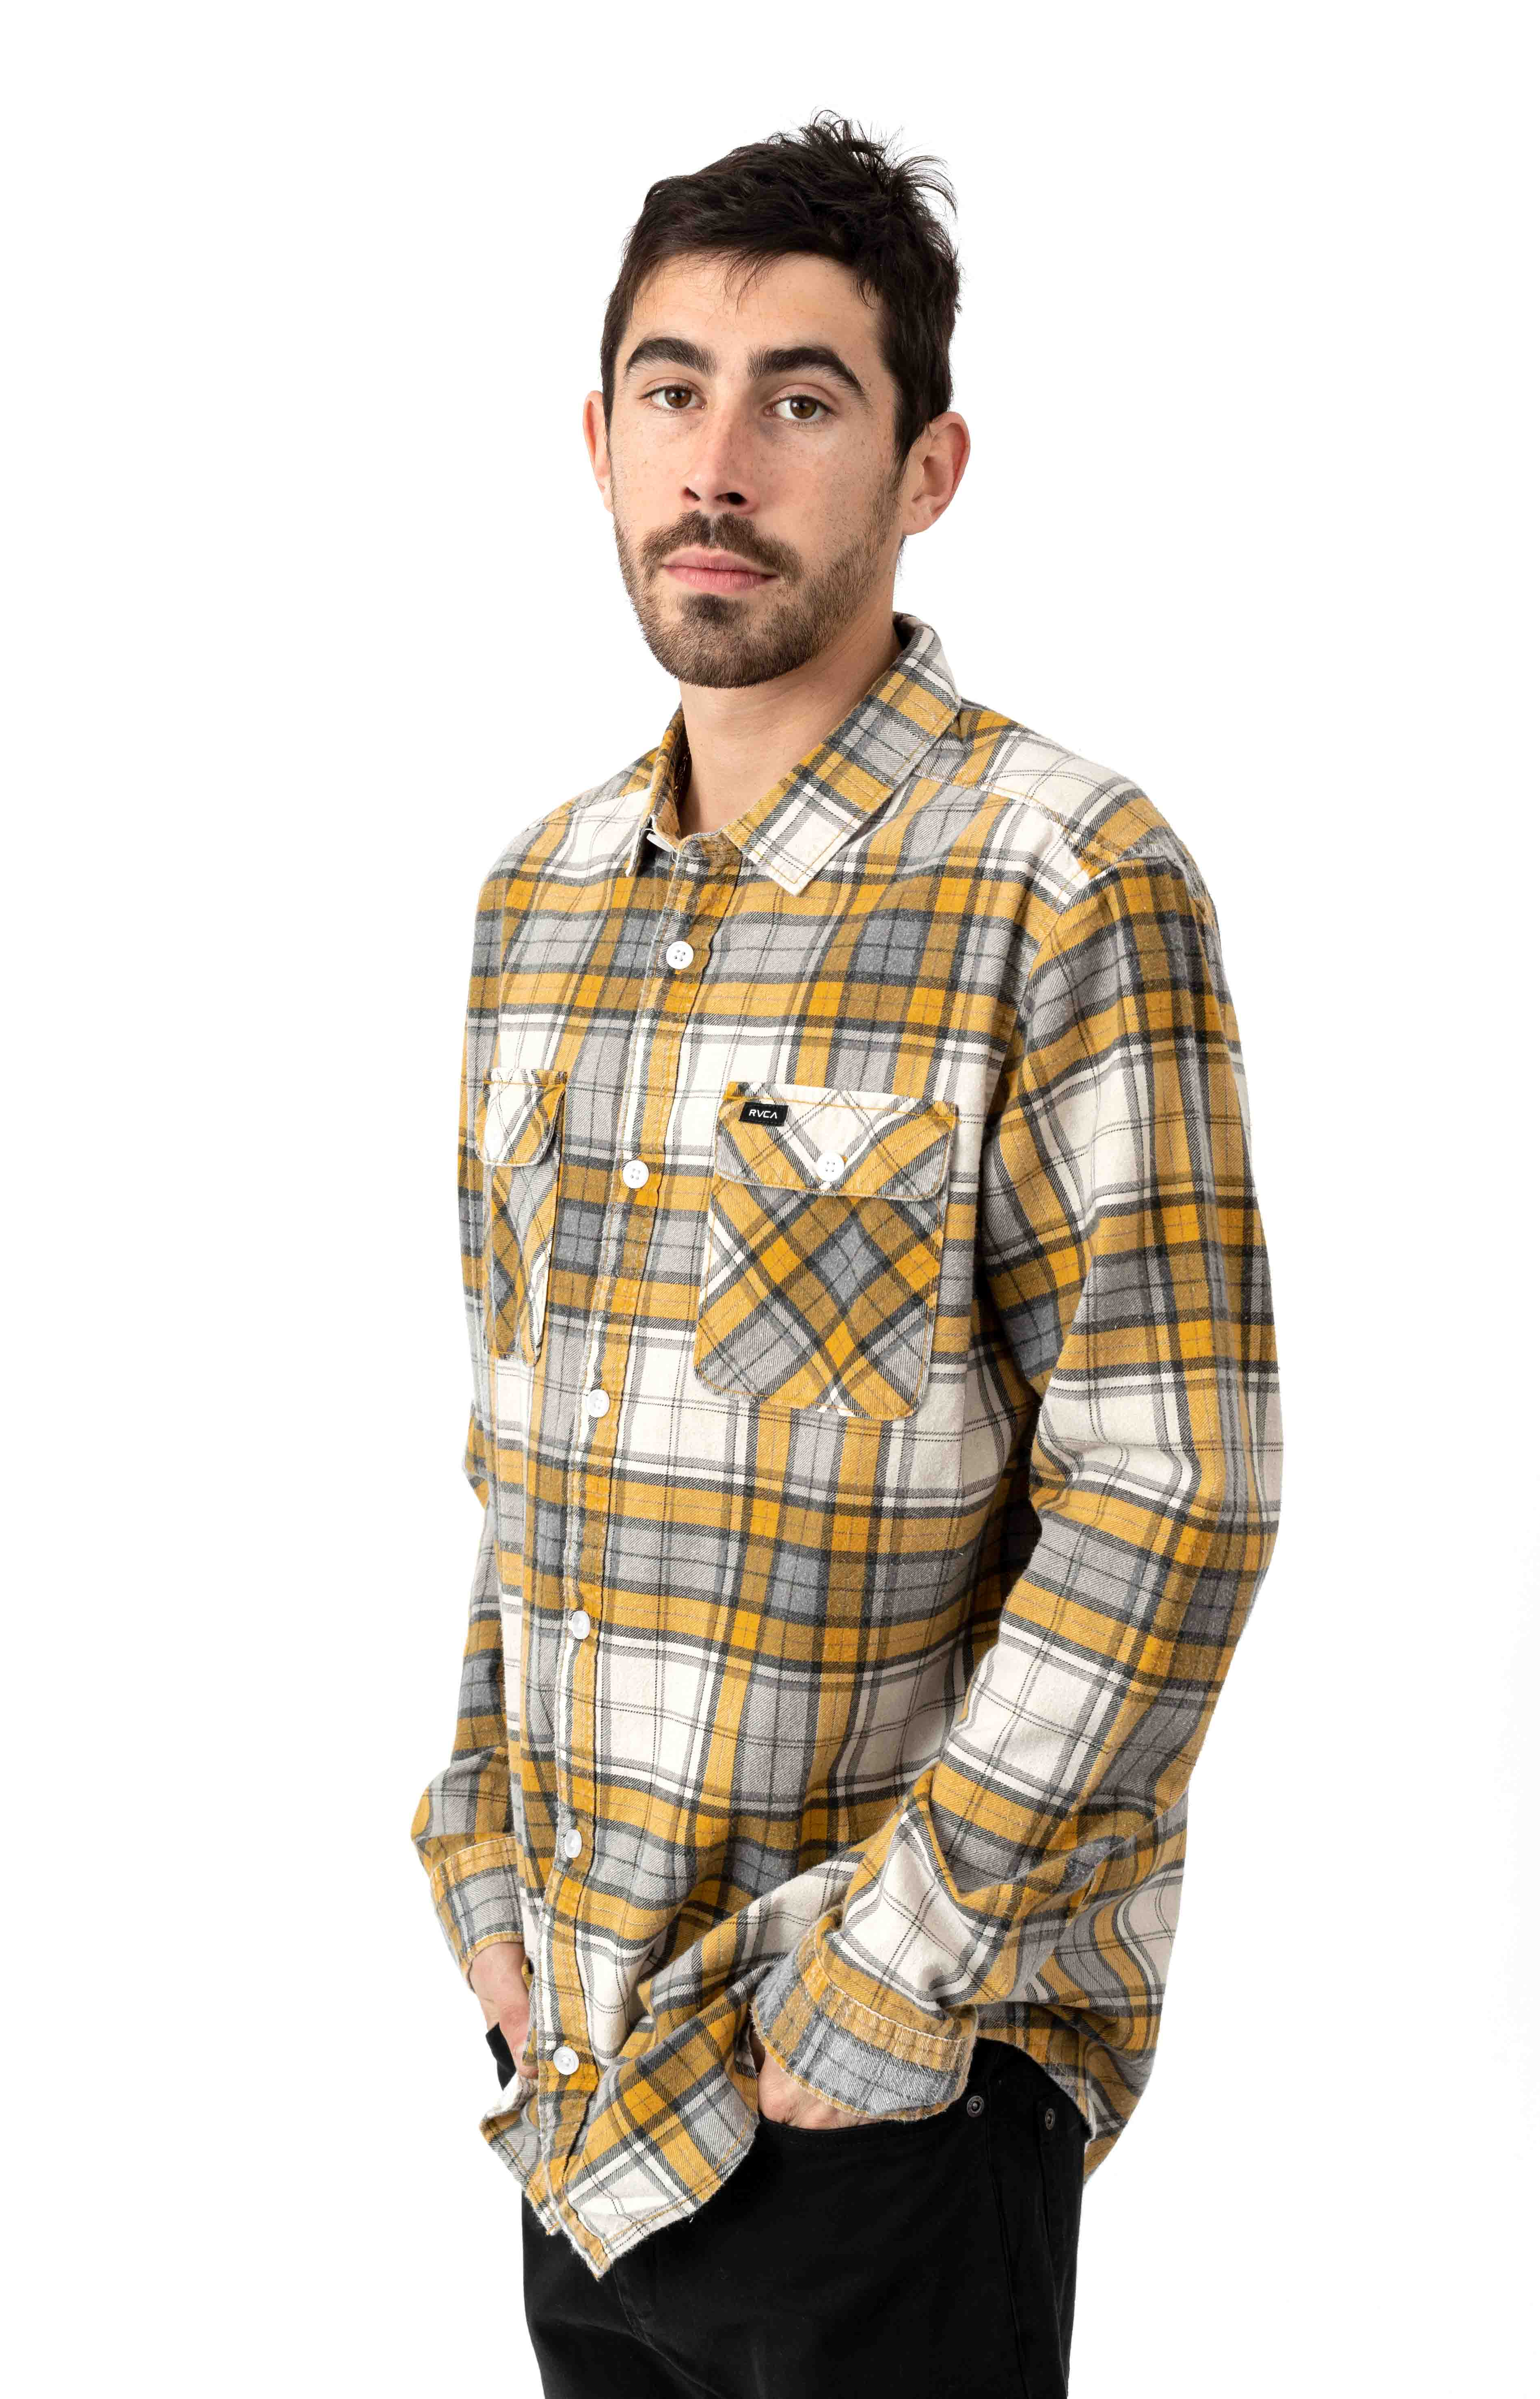 Panhandle Flannel Button-Up Shirt - Golden Yellow